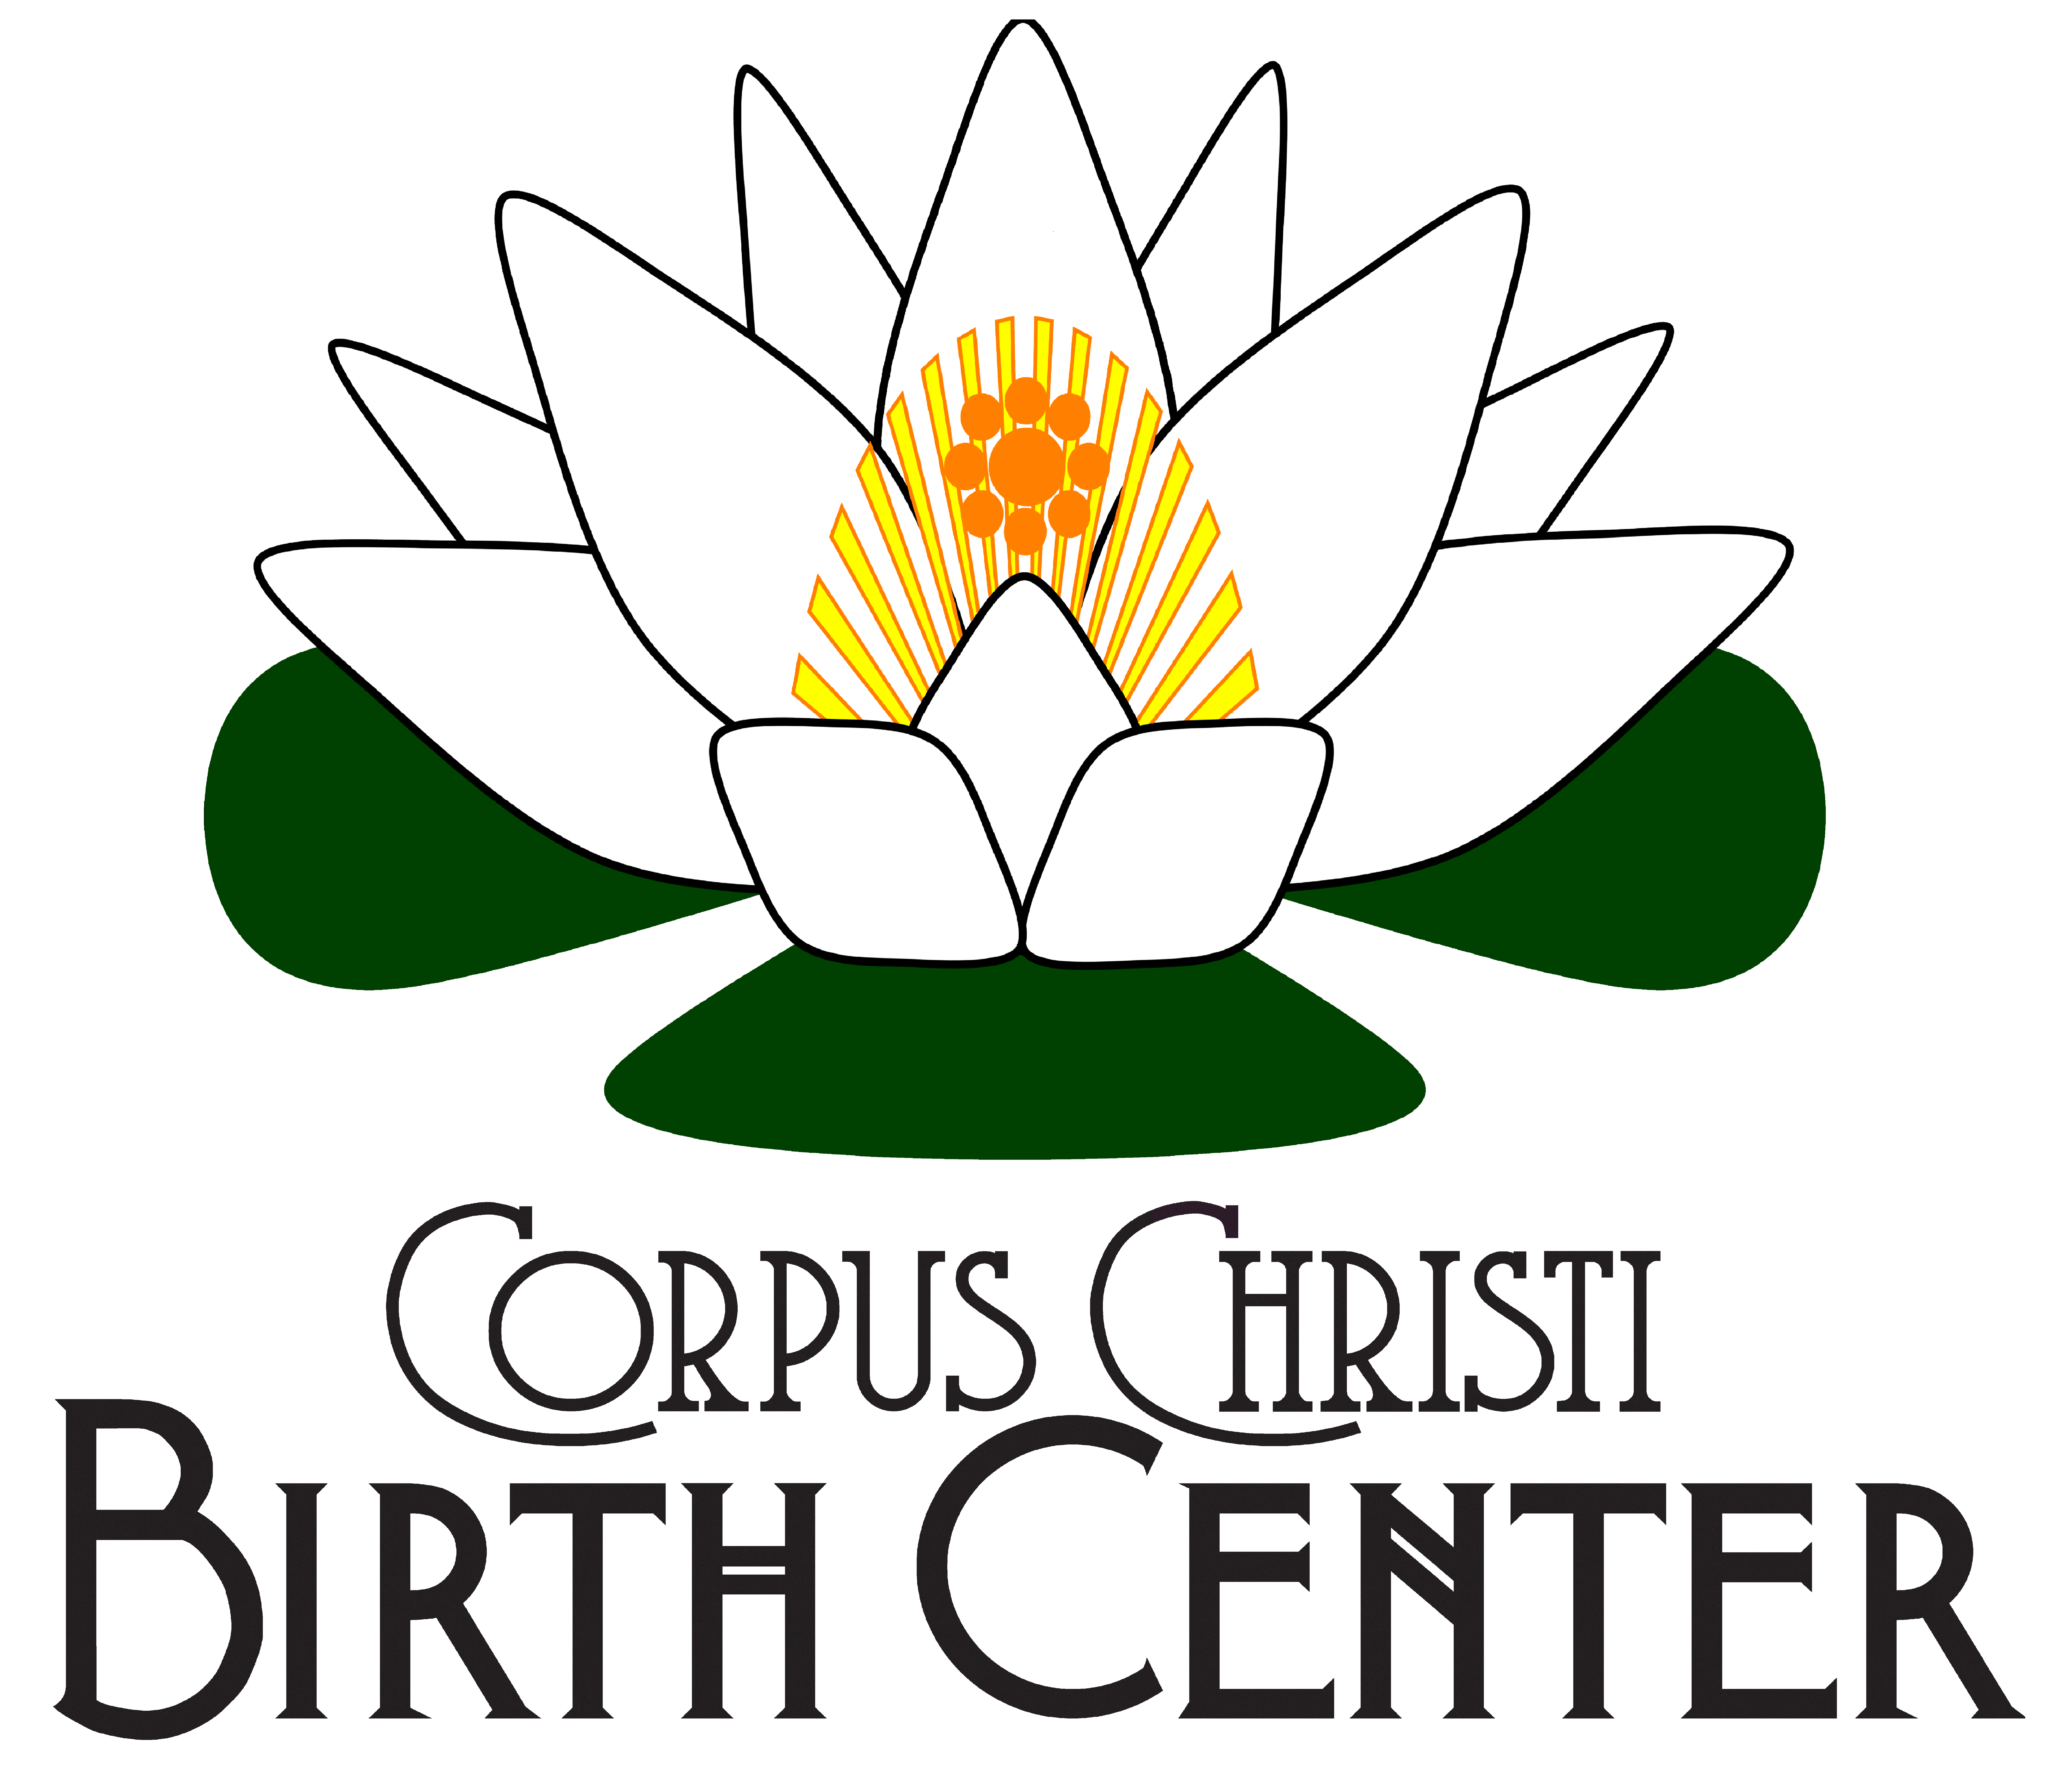 Corpus Christi Birth Center